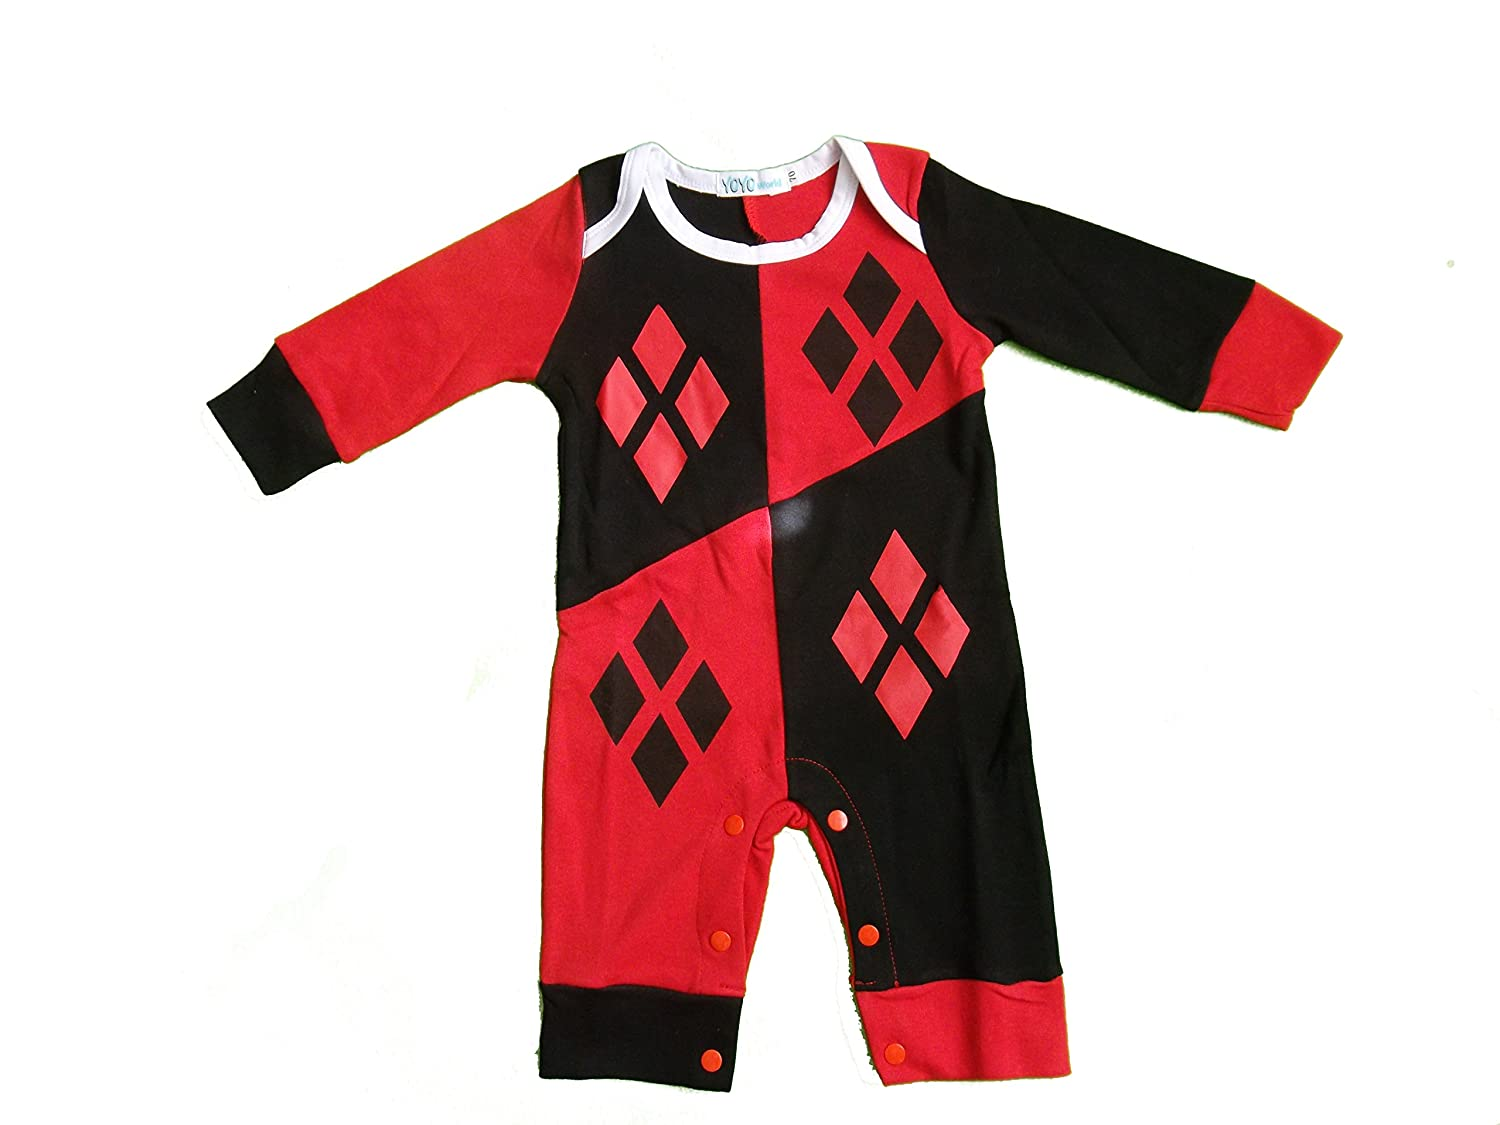 Harley Quinn-Inspired Infant Outfit Onesie (0-6 Months) Inspired by DC Comics